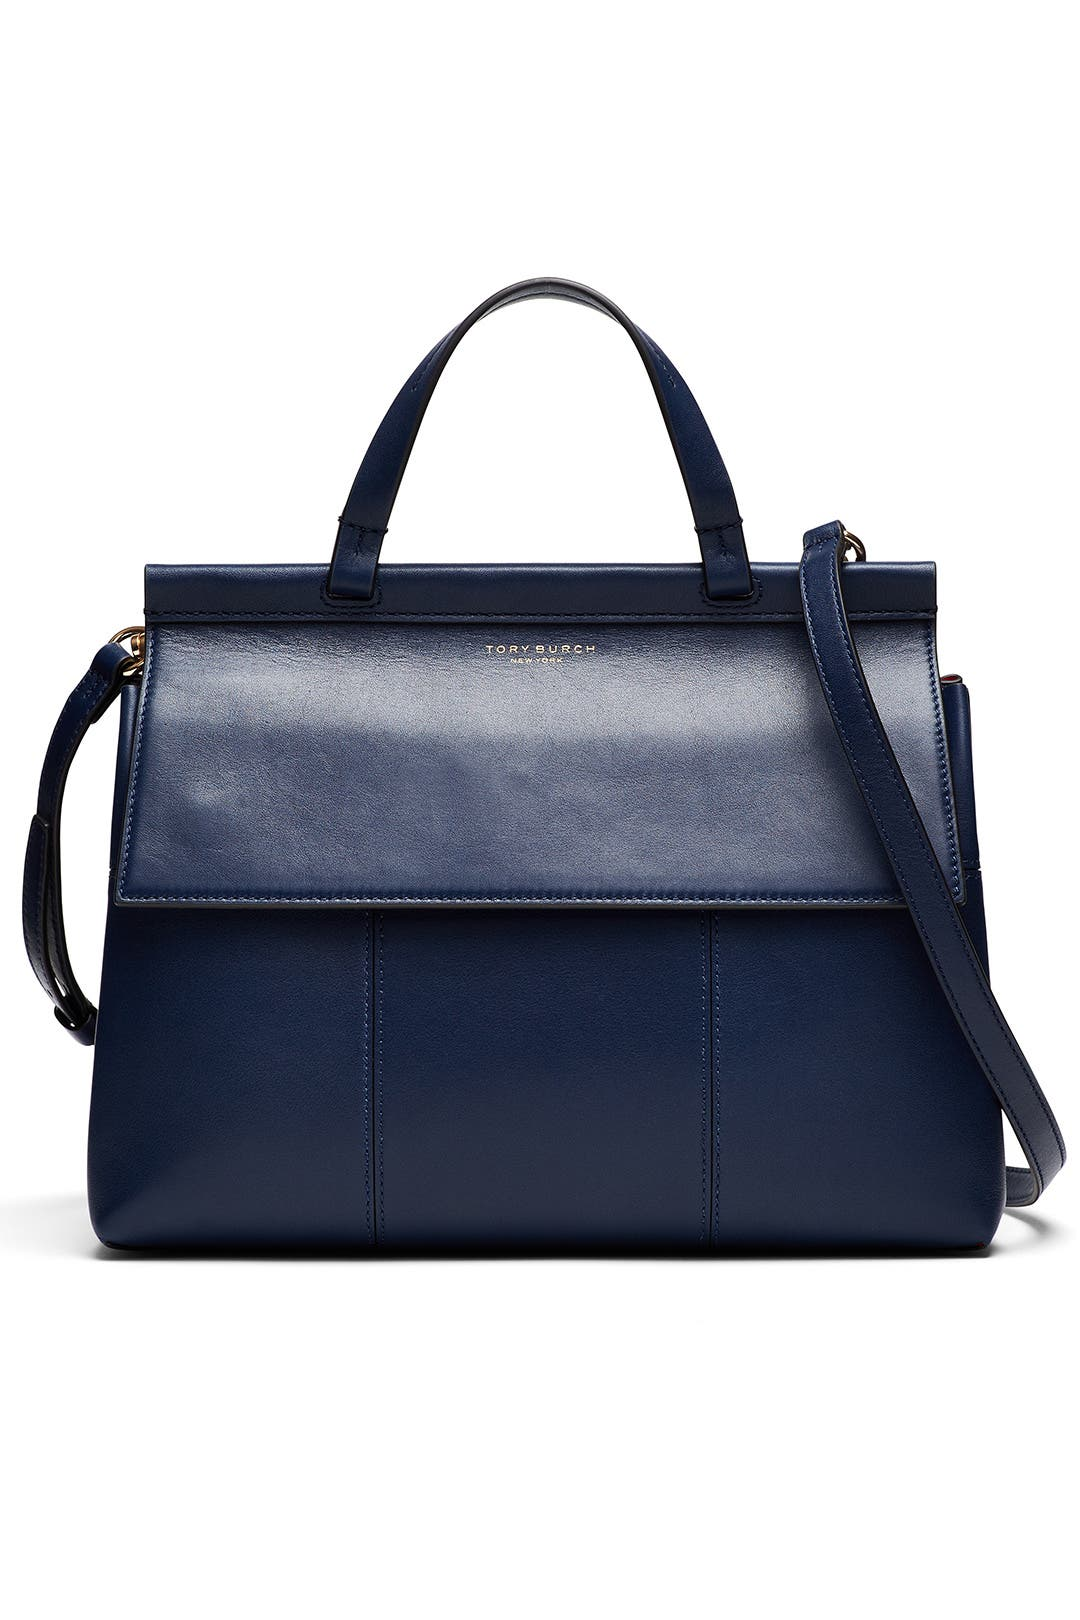 2d291d0e0 Royal Navy T Satchel by Tory Burch Accessories for  75